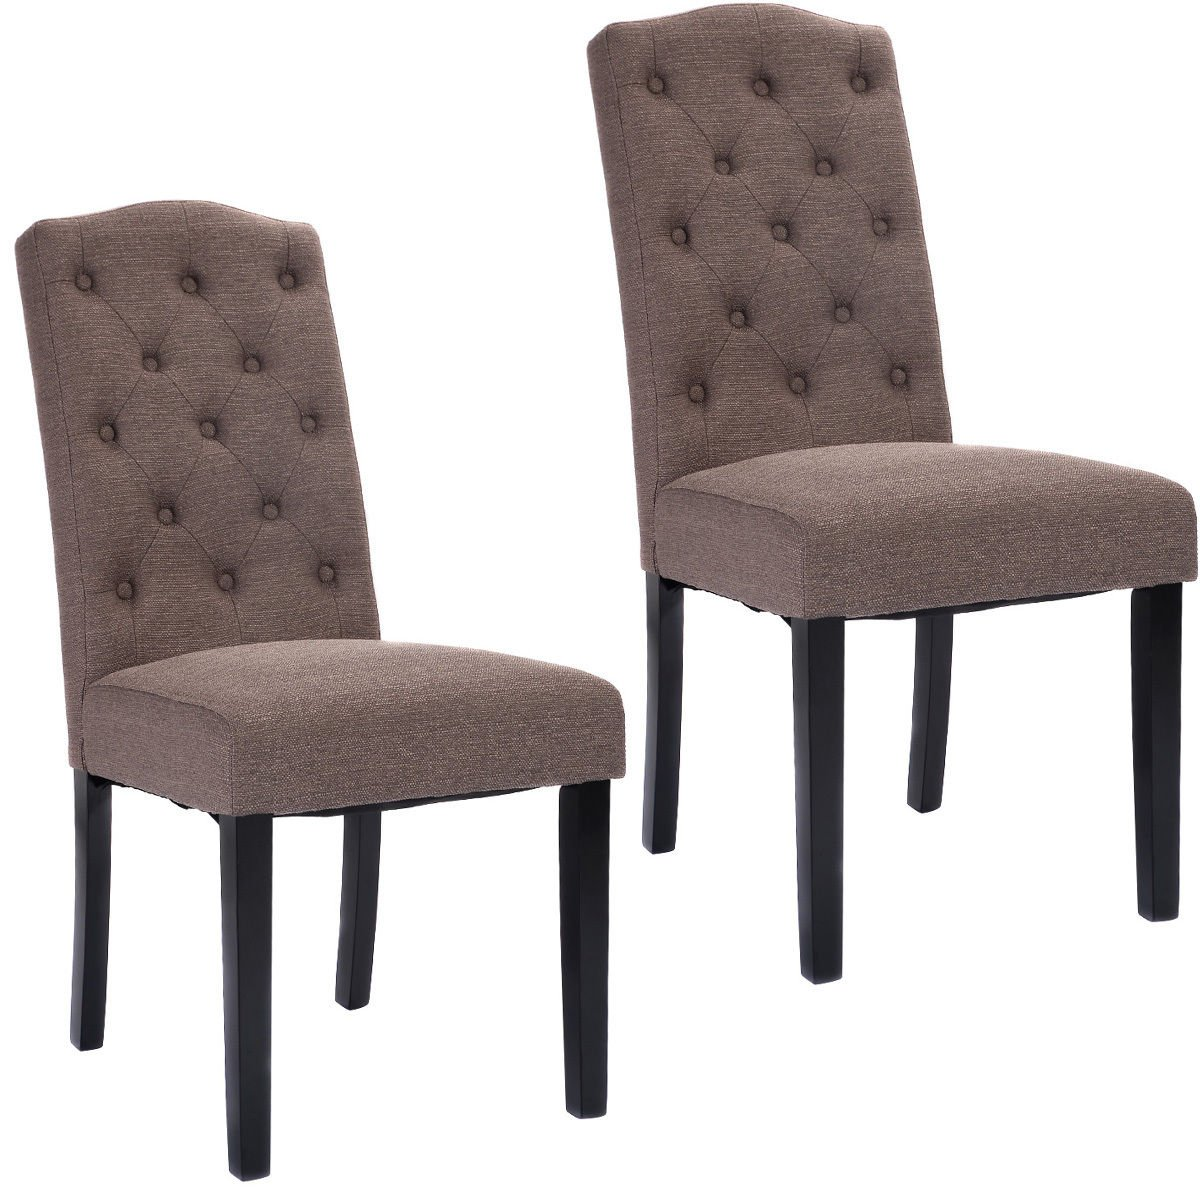 Amazon com ghp 2 pcs brown fabric rubber wood frame armless tufted dining accent chair furniture chairs